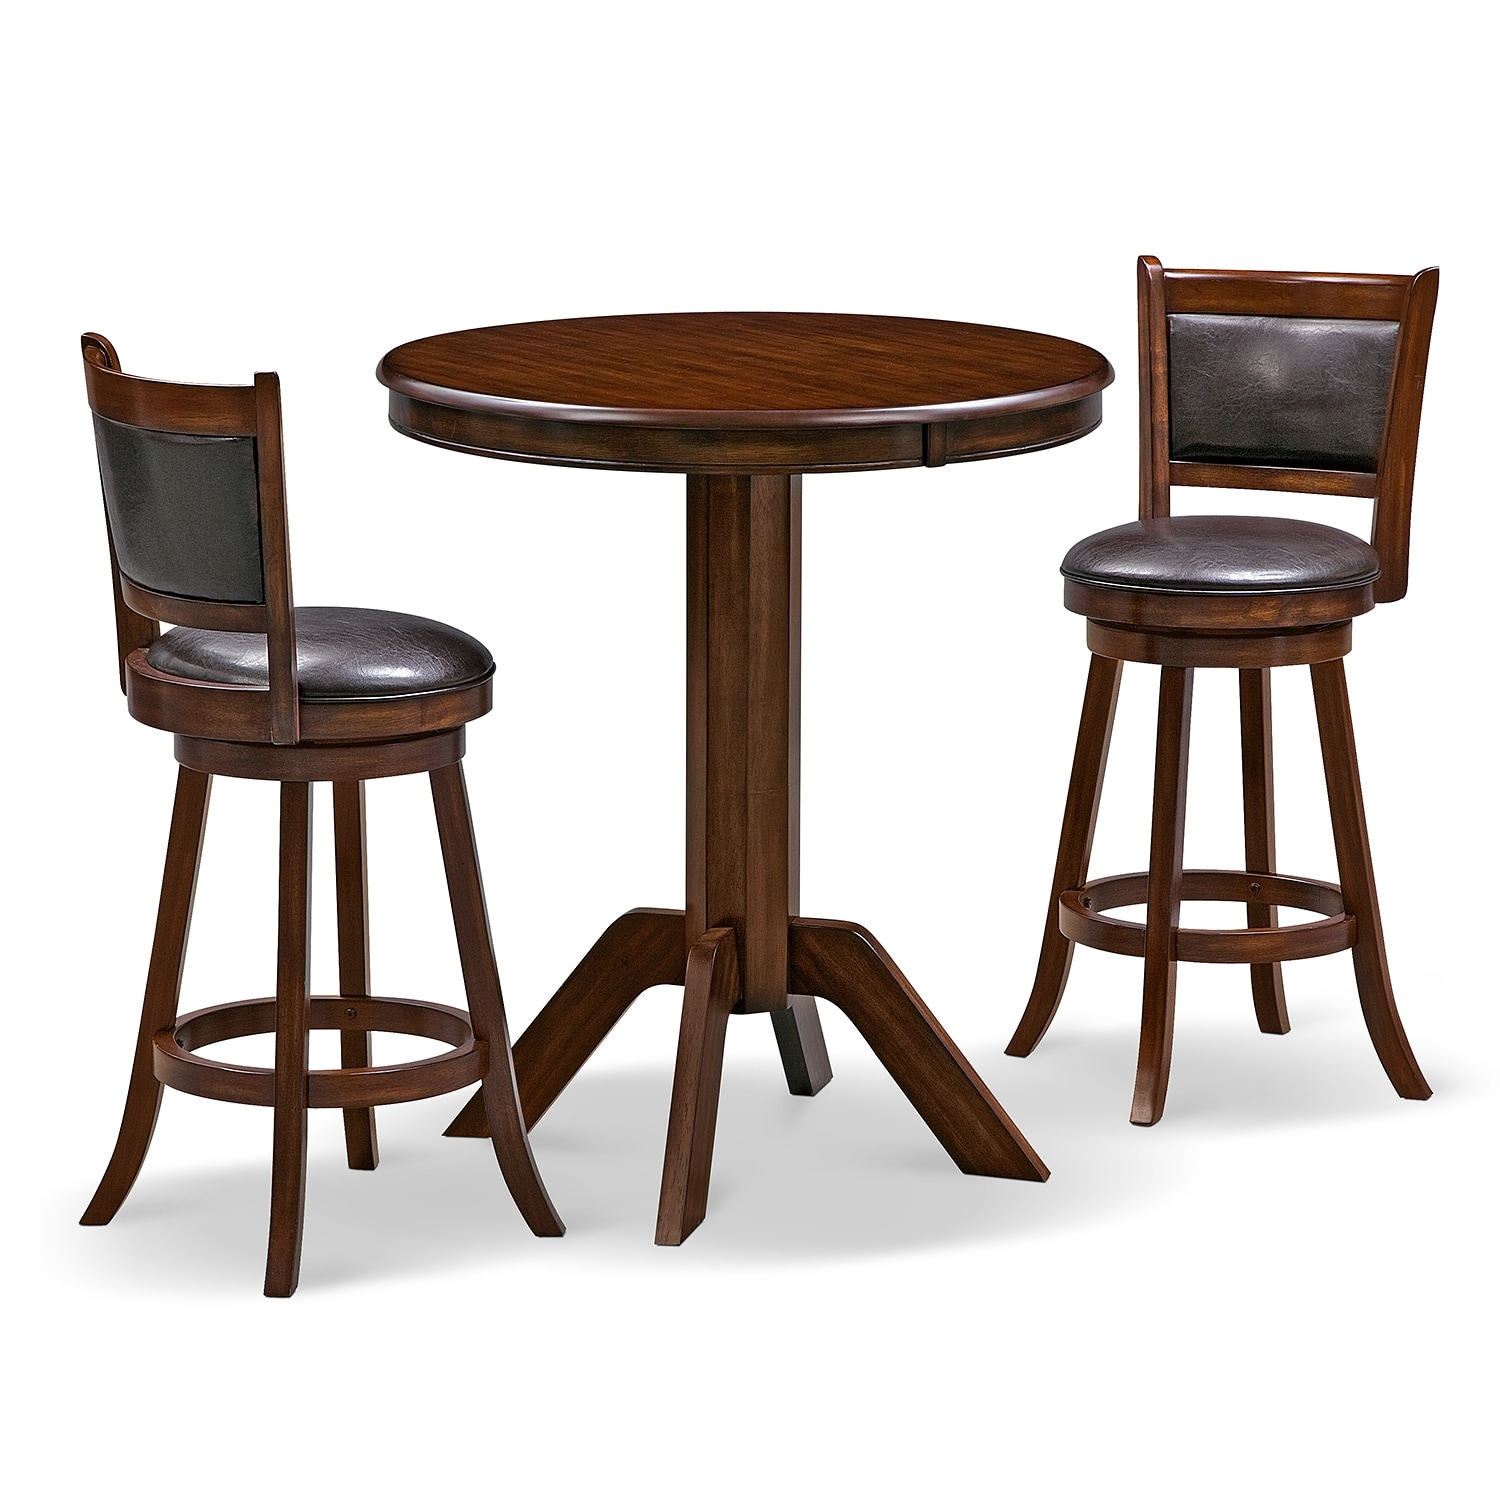 Dining Room Furniture - Concord Everly 3 Pc. Bar-Height Dinette